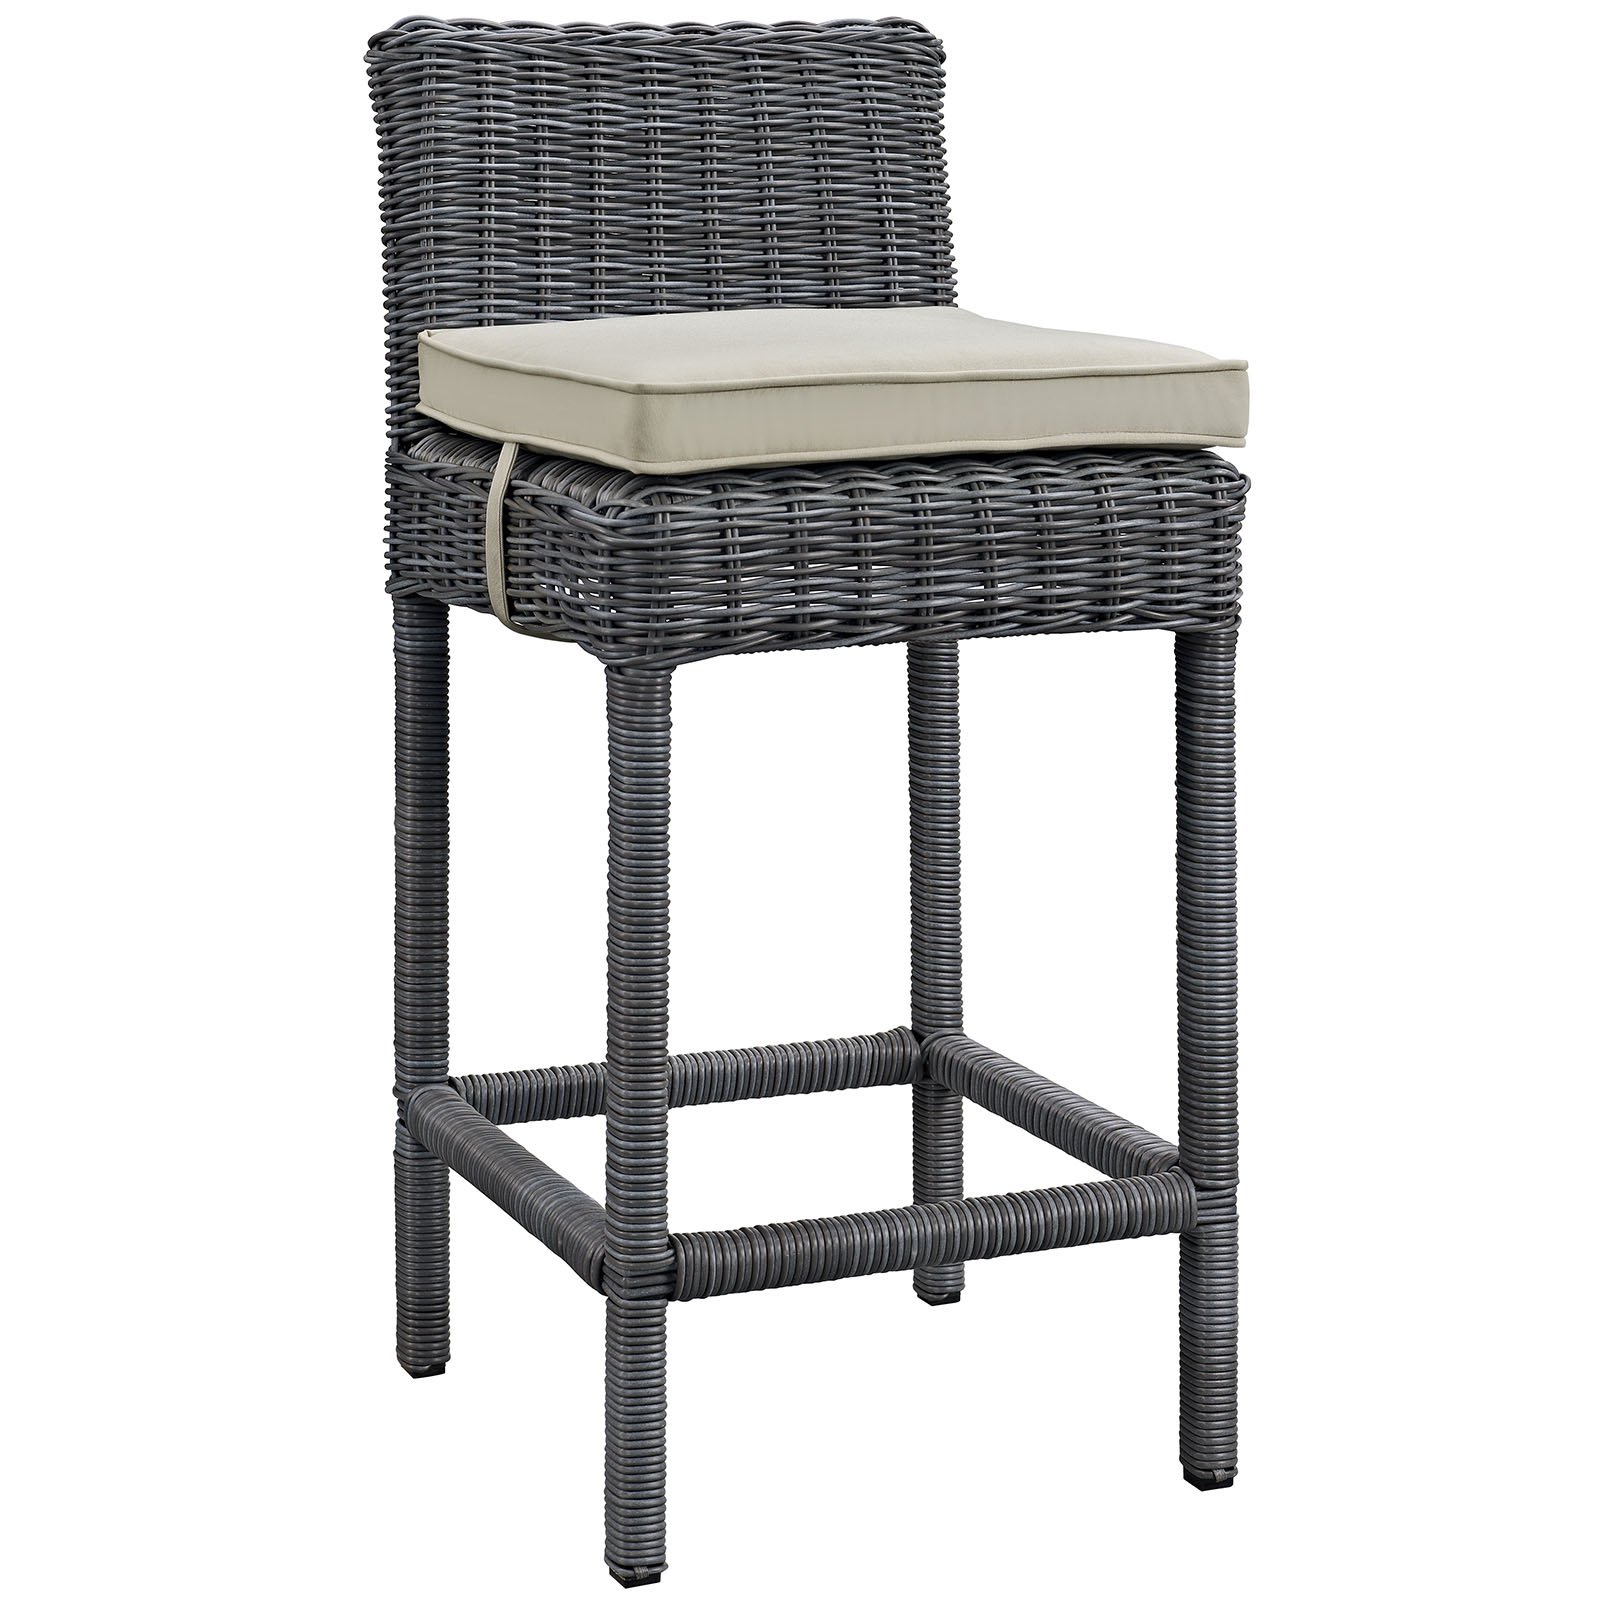 Modway Summon Outdoor Patio Sunbrella Bar Stool, Multiple Colors